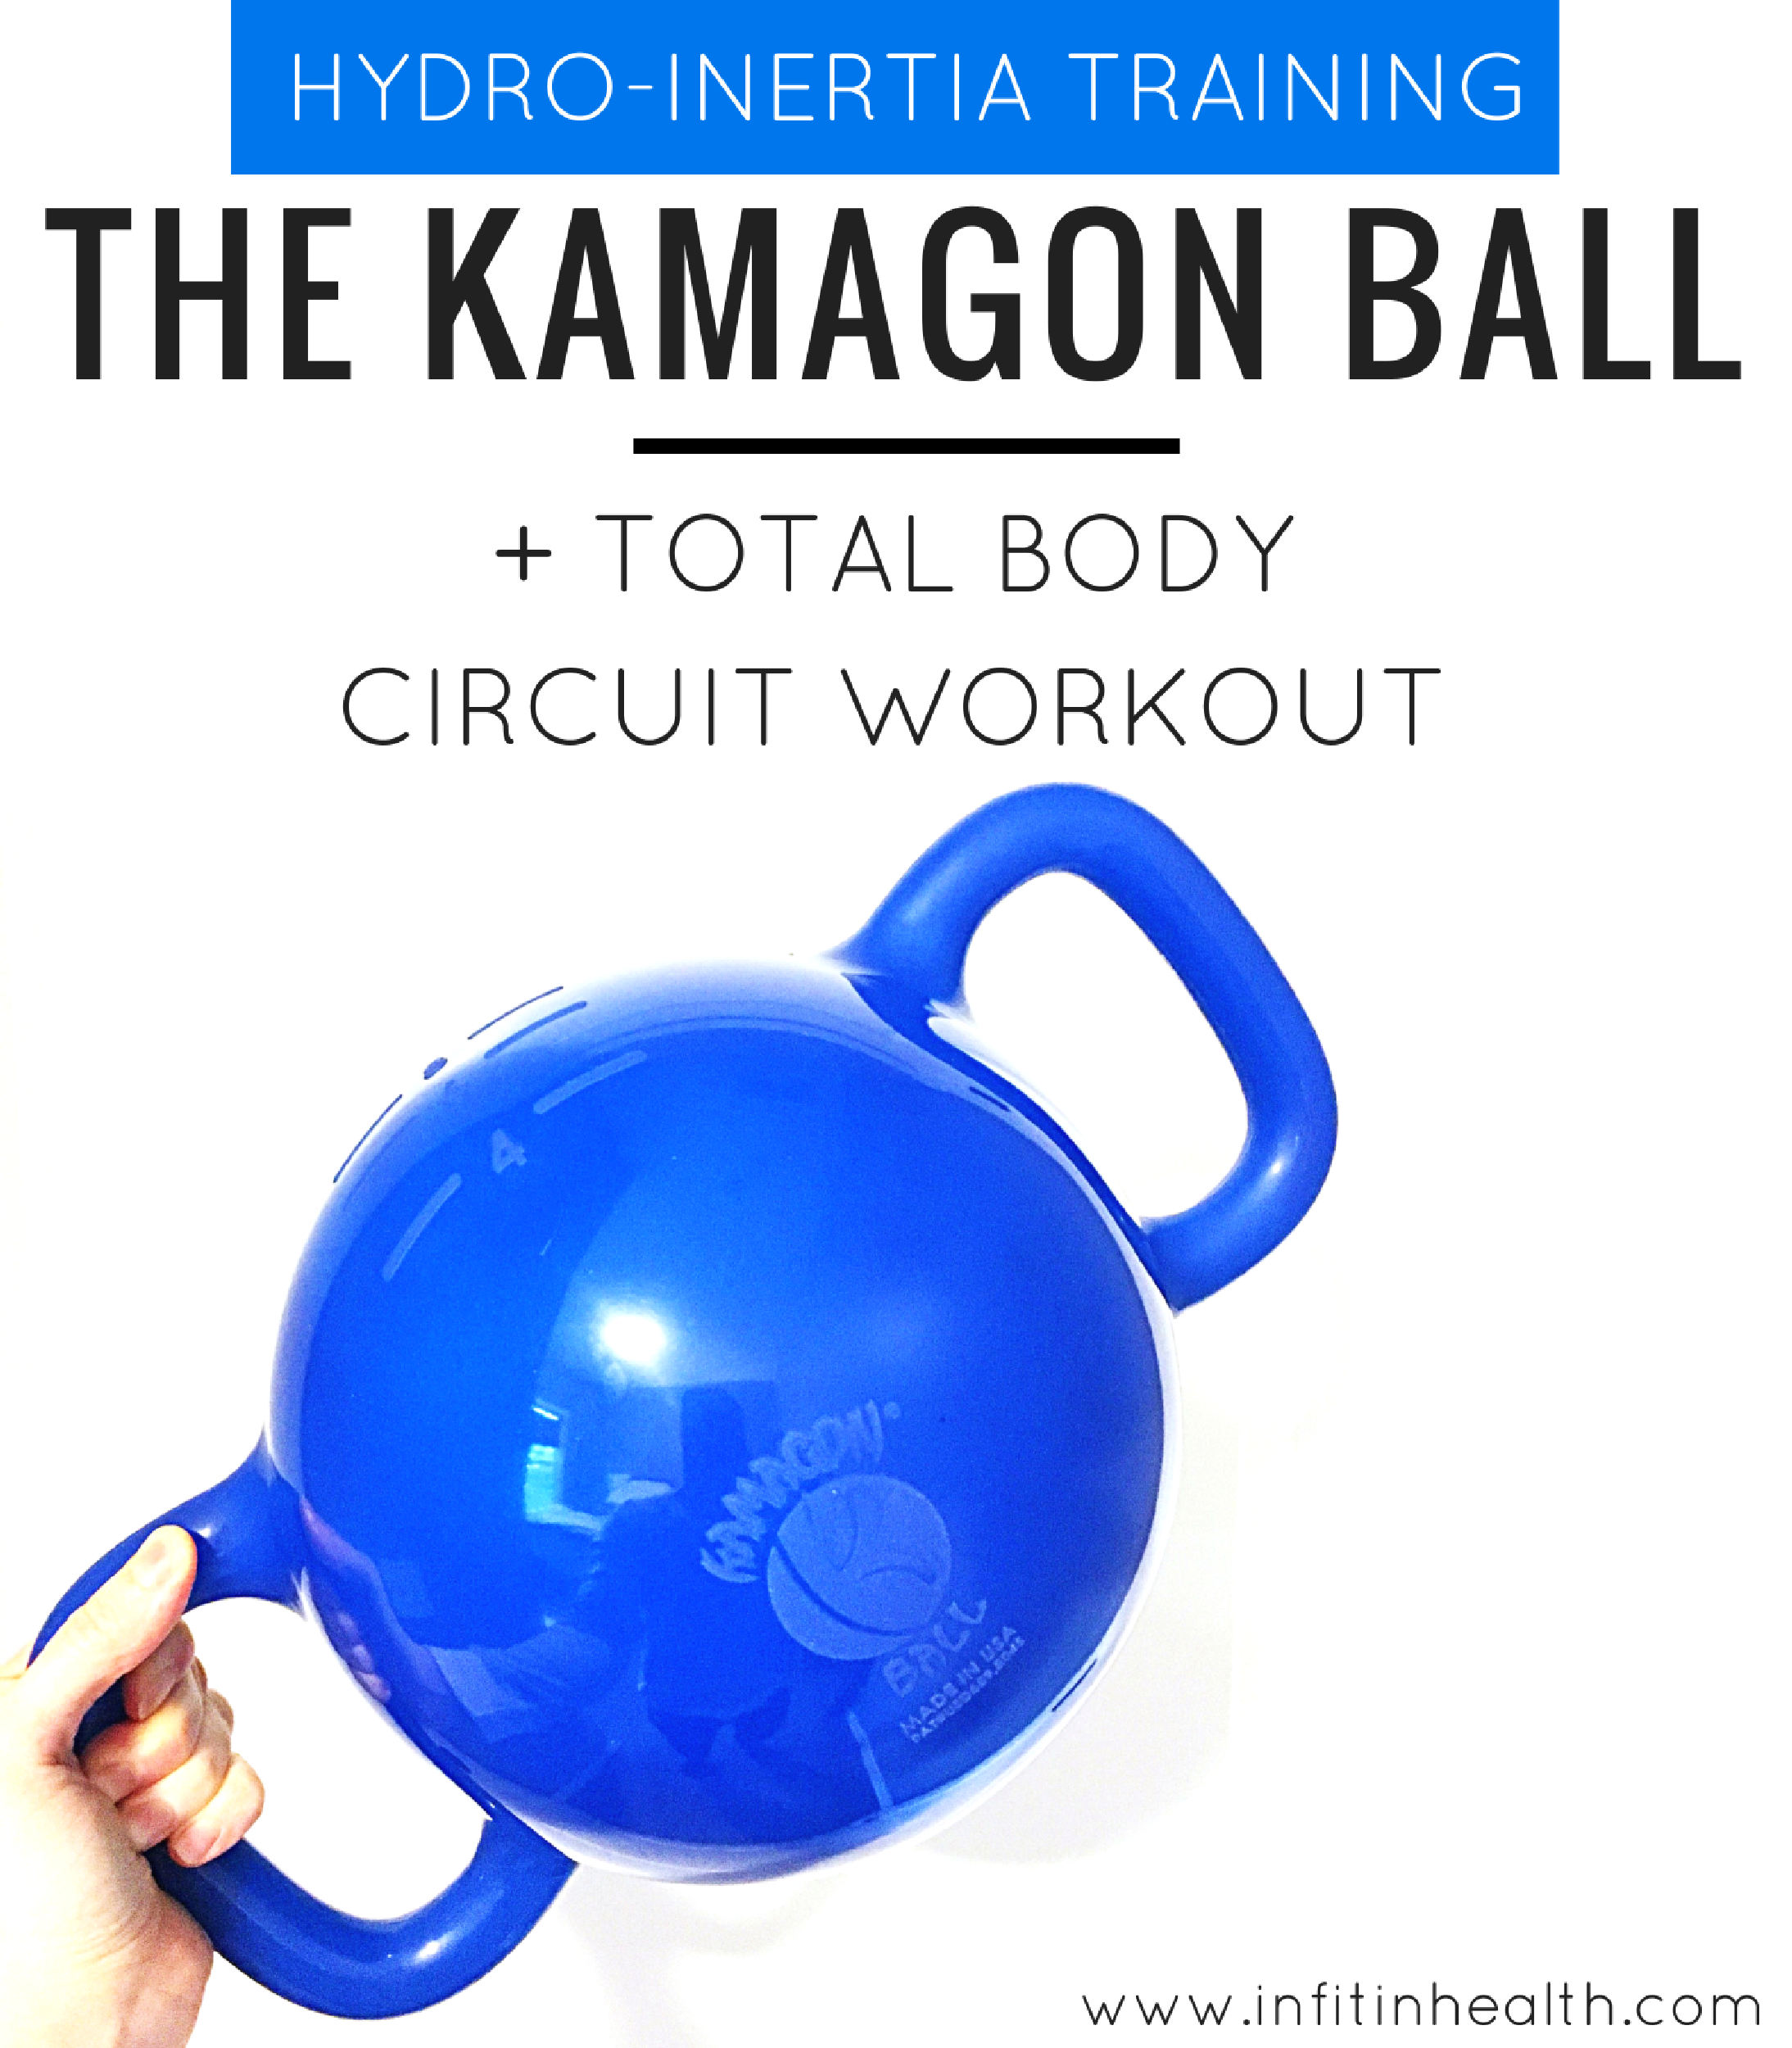 Hydro Inertia Training w/ the Kamagon Ball + a Total Body Circuit Workout